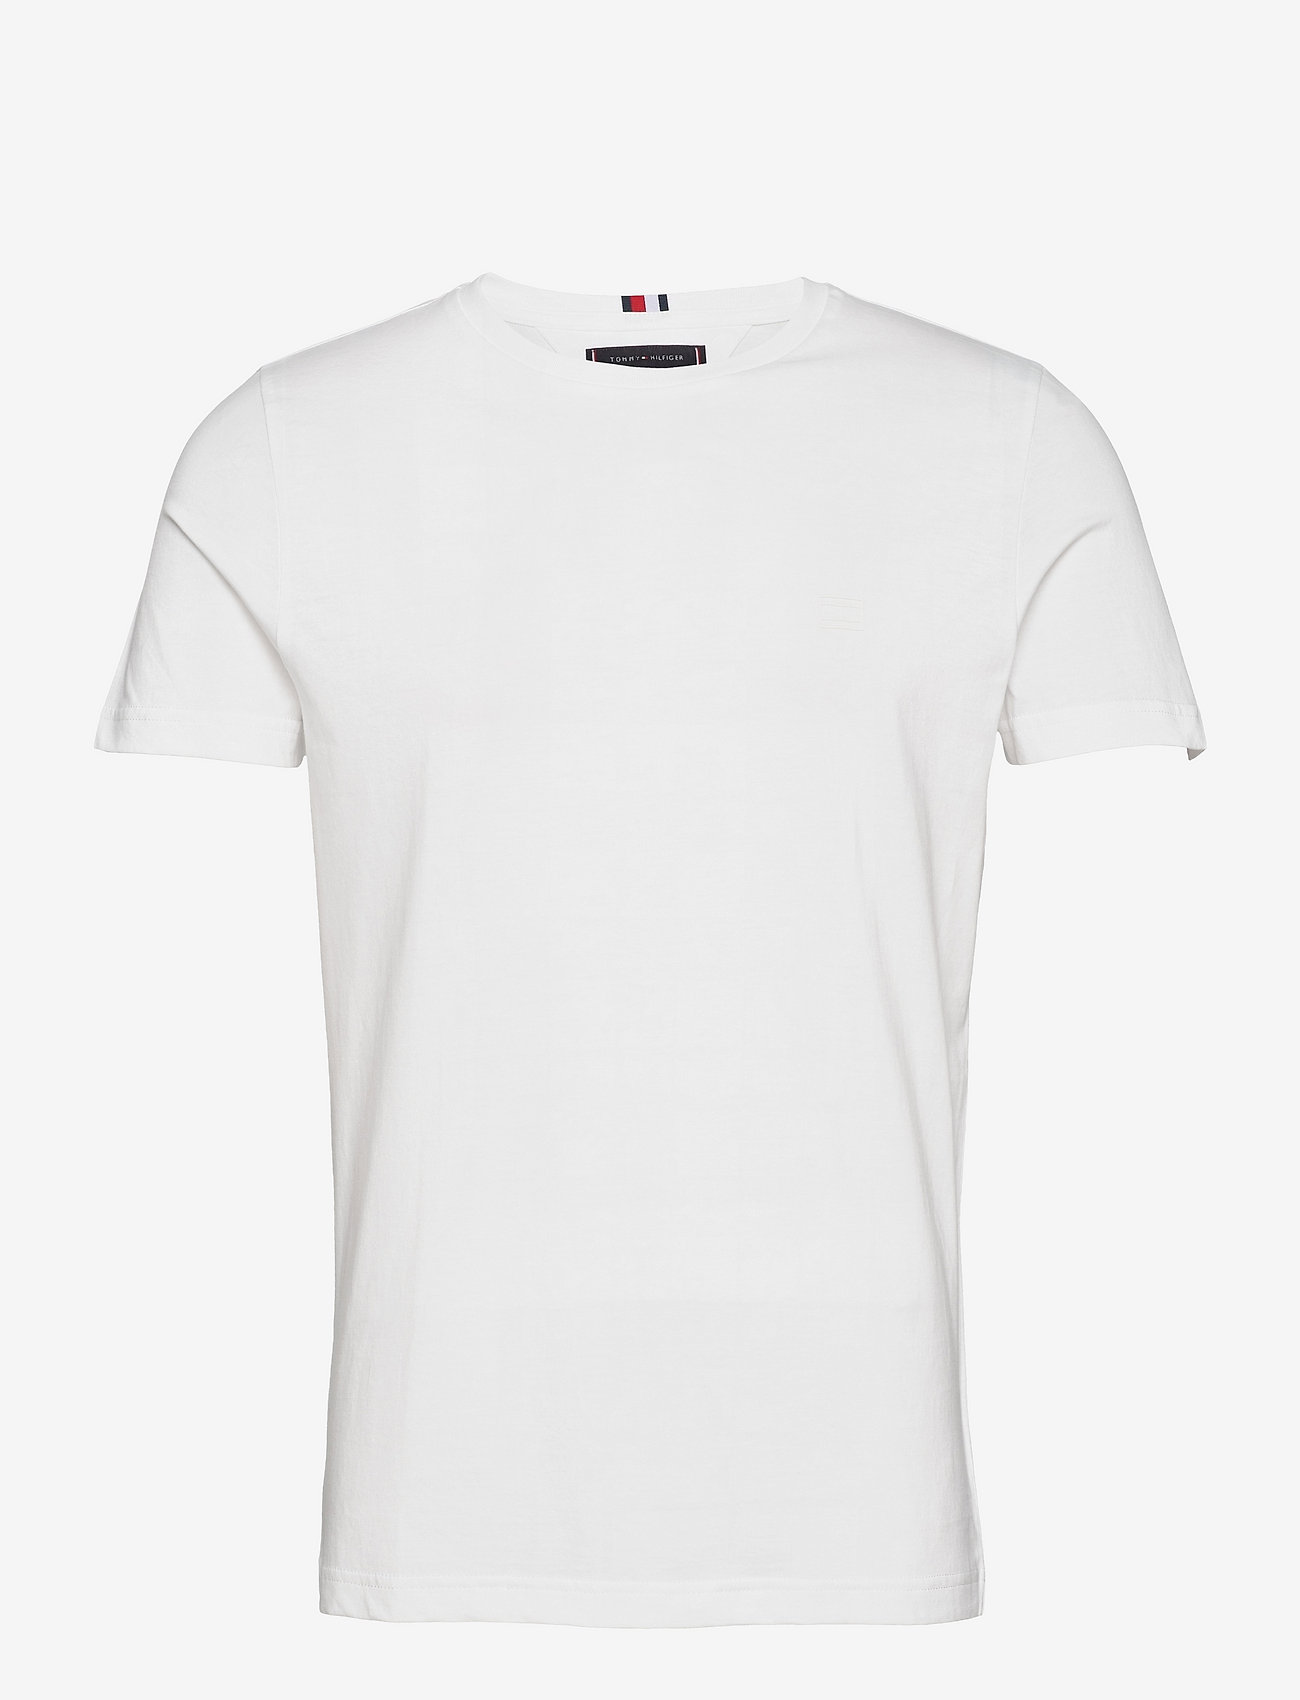 Tommy Hilfiger - TH COOL BACK LOGO TEE - t-shirts basiques - white - 0